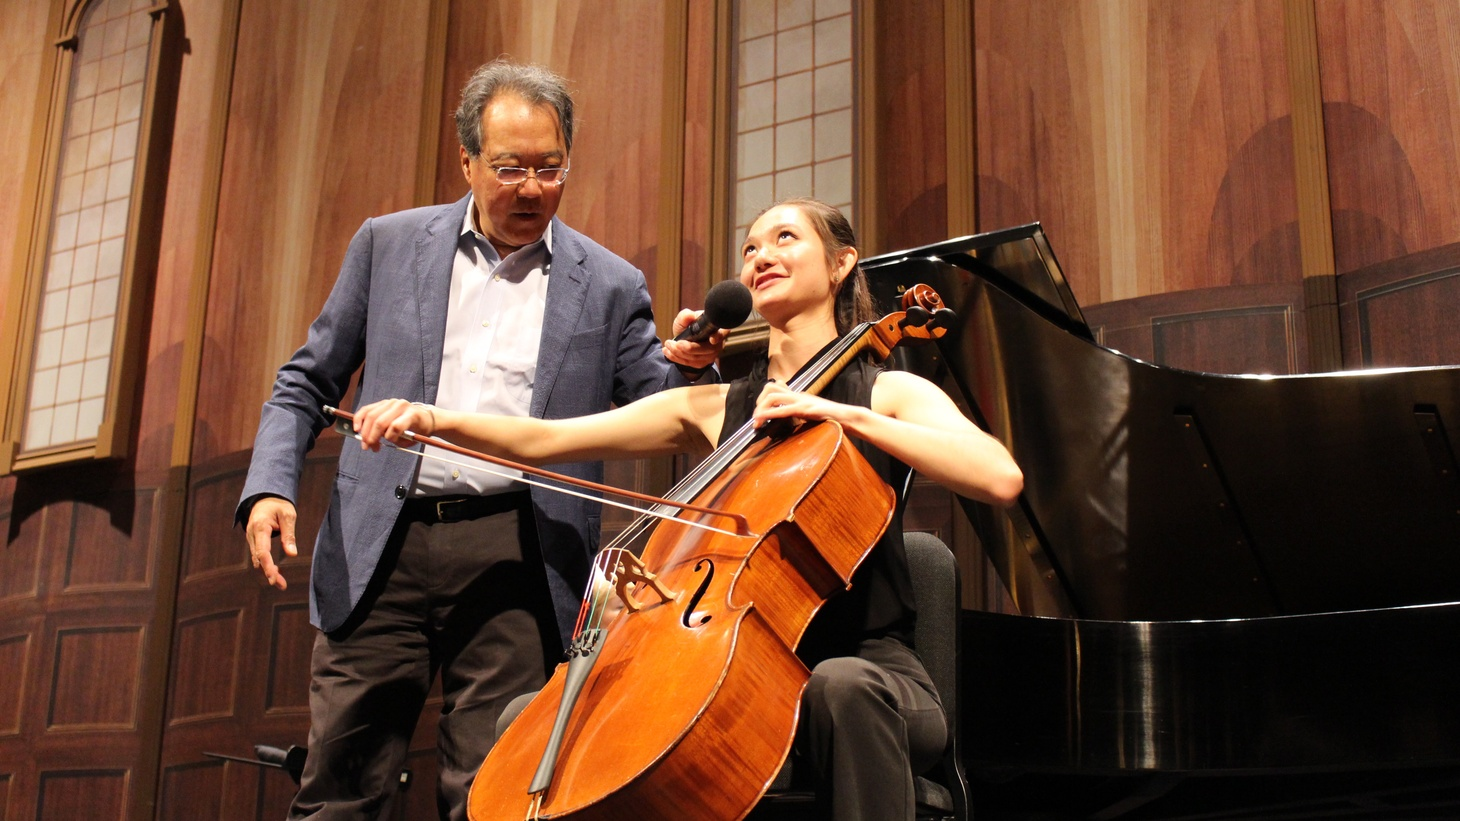 UCSB's electrical engineering undergraduate, Katrina Agate, takes stage instructions from revered cellist Yo-Yo Ma during a public master class.